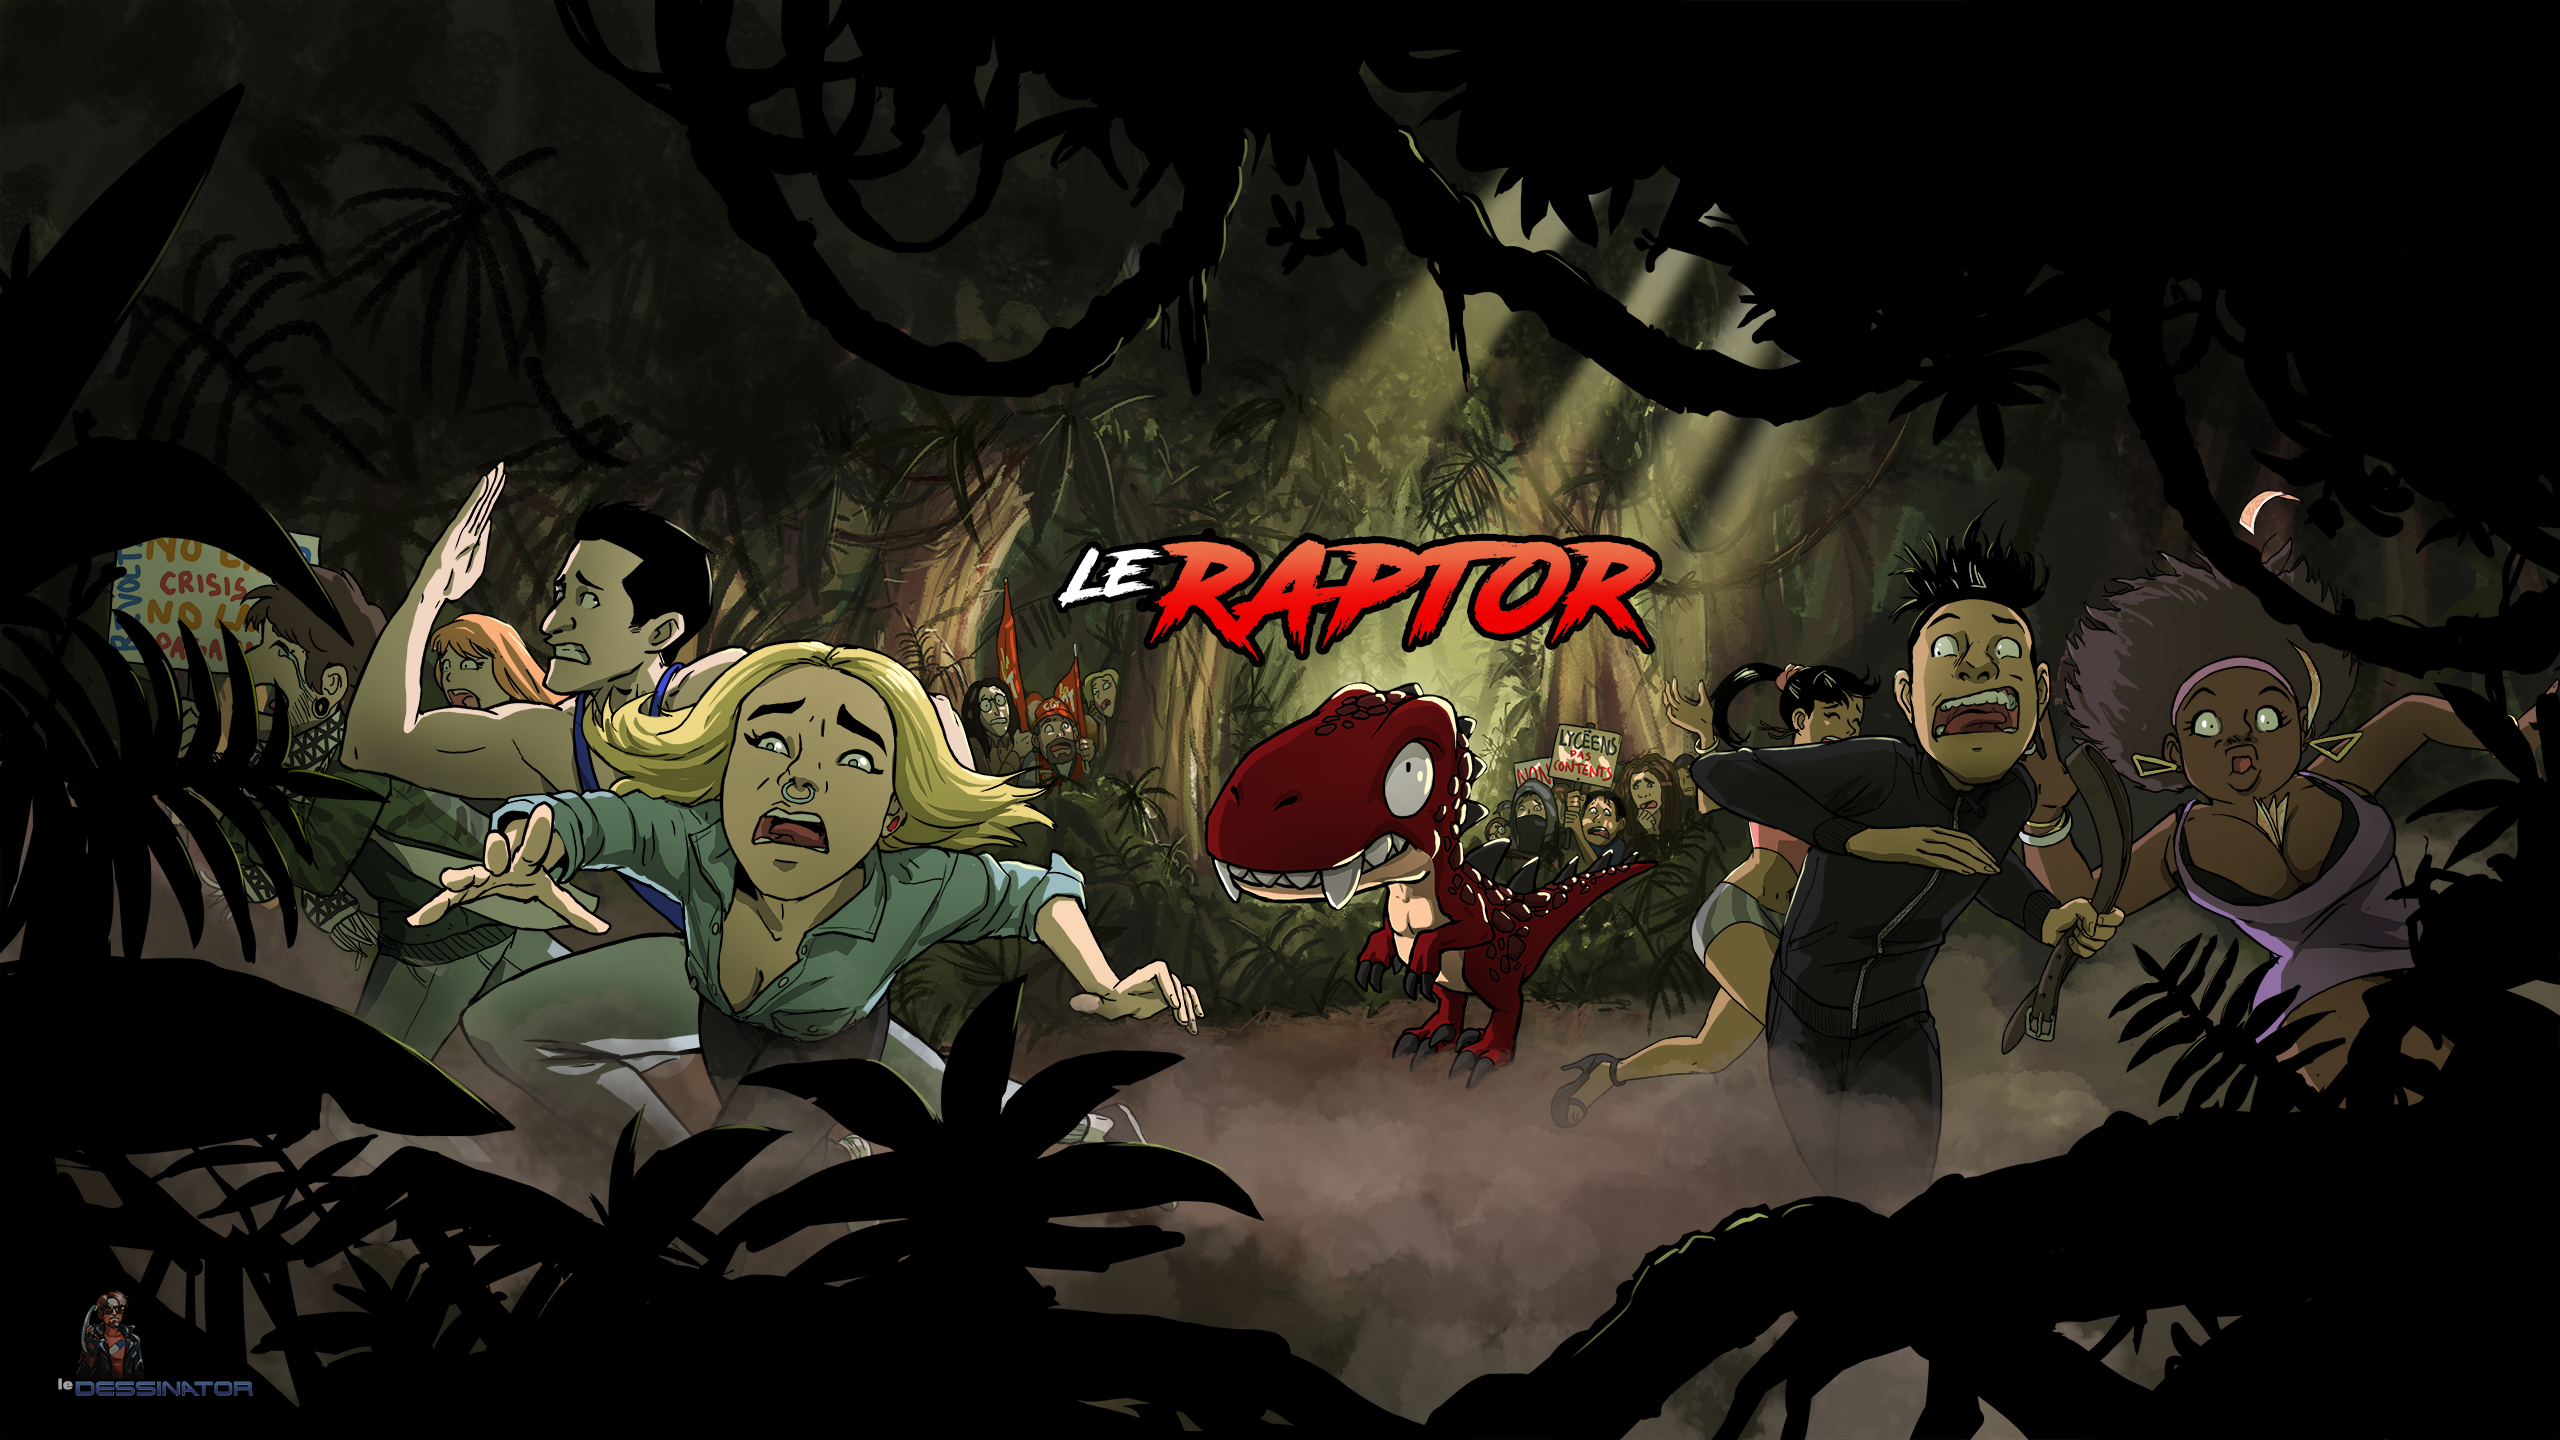 Le Raptor - Banni\u00e8re Officielle